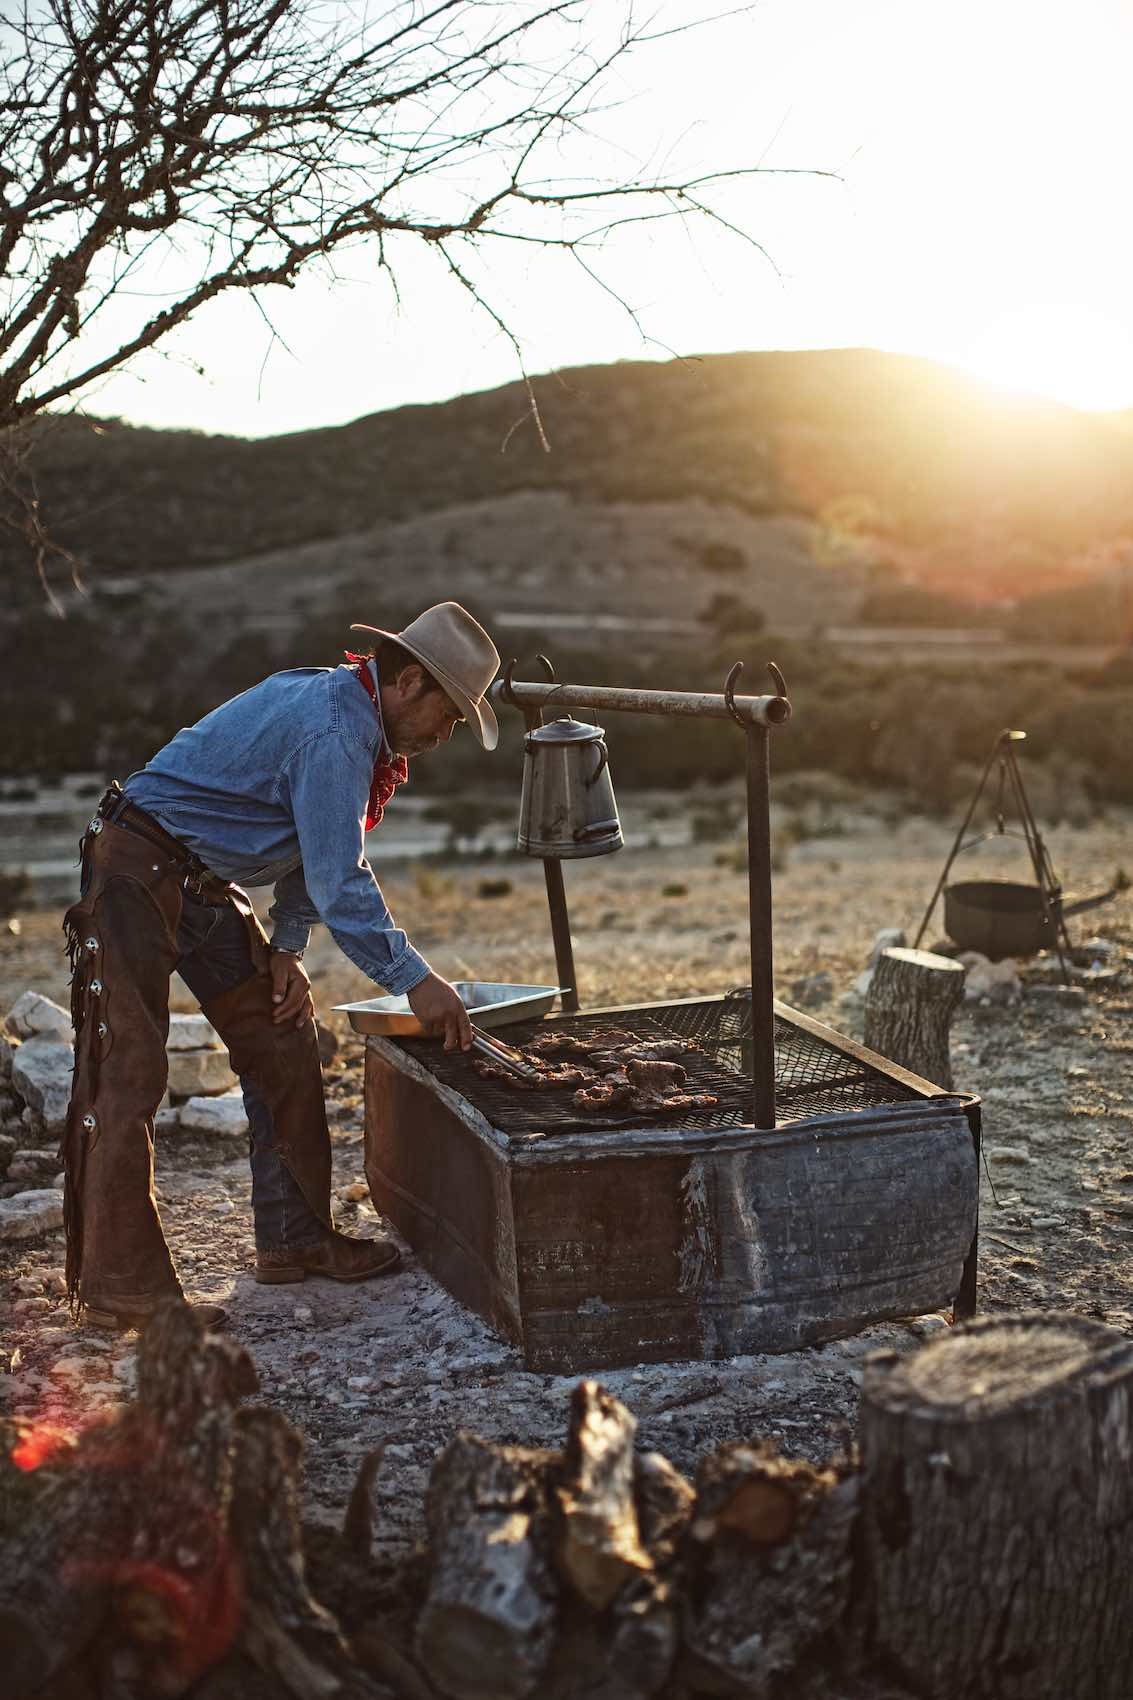 Jody Horton Photography - Cowboy cooking meats on outdoor grill.